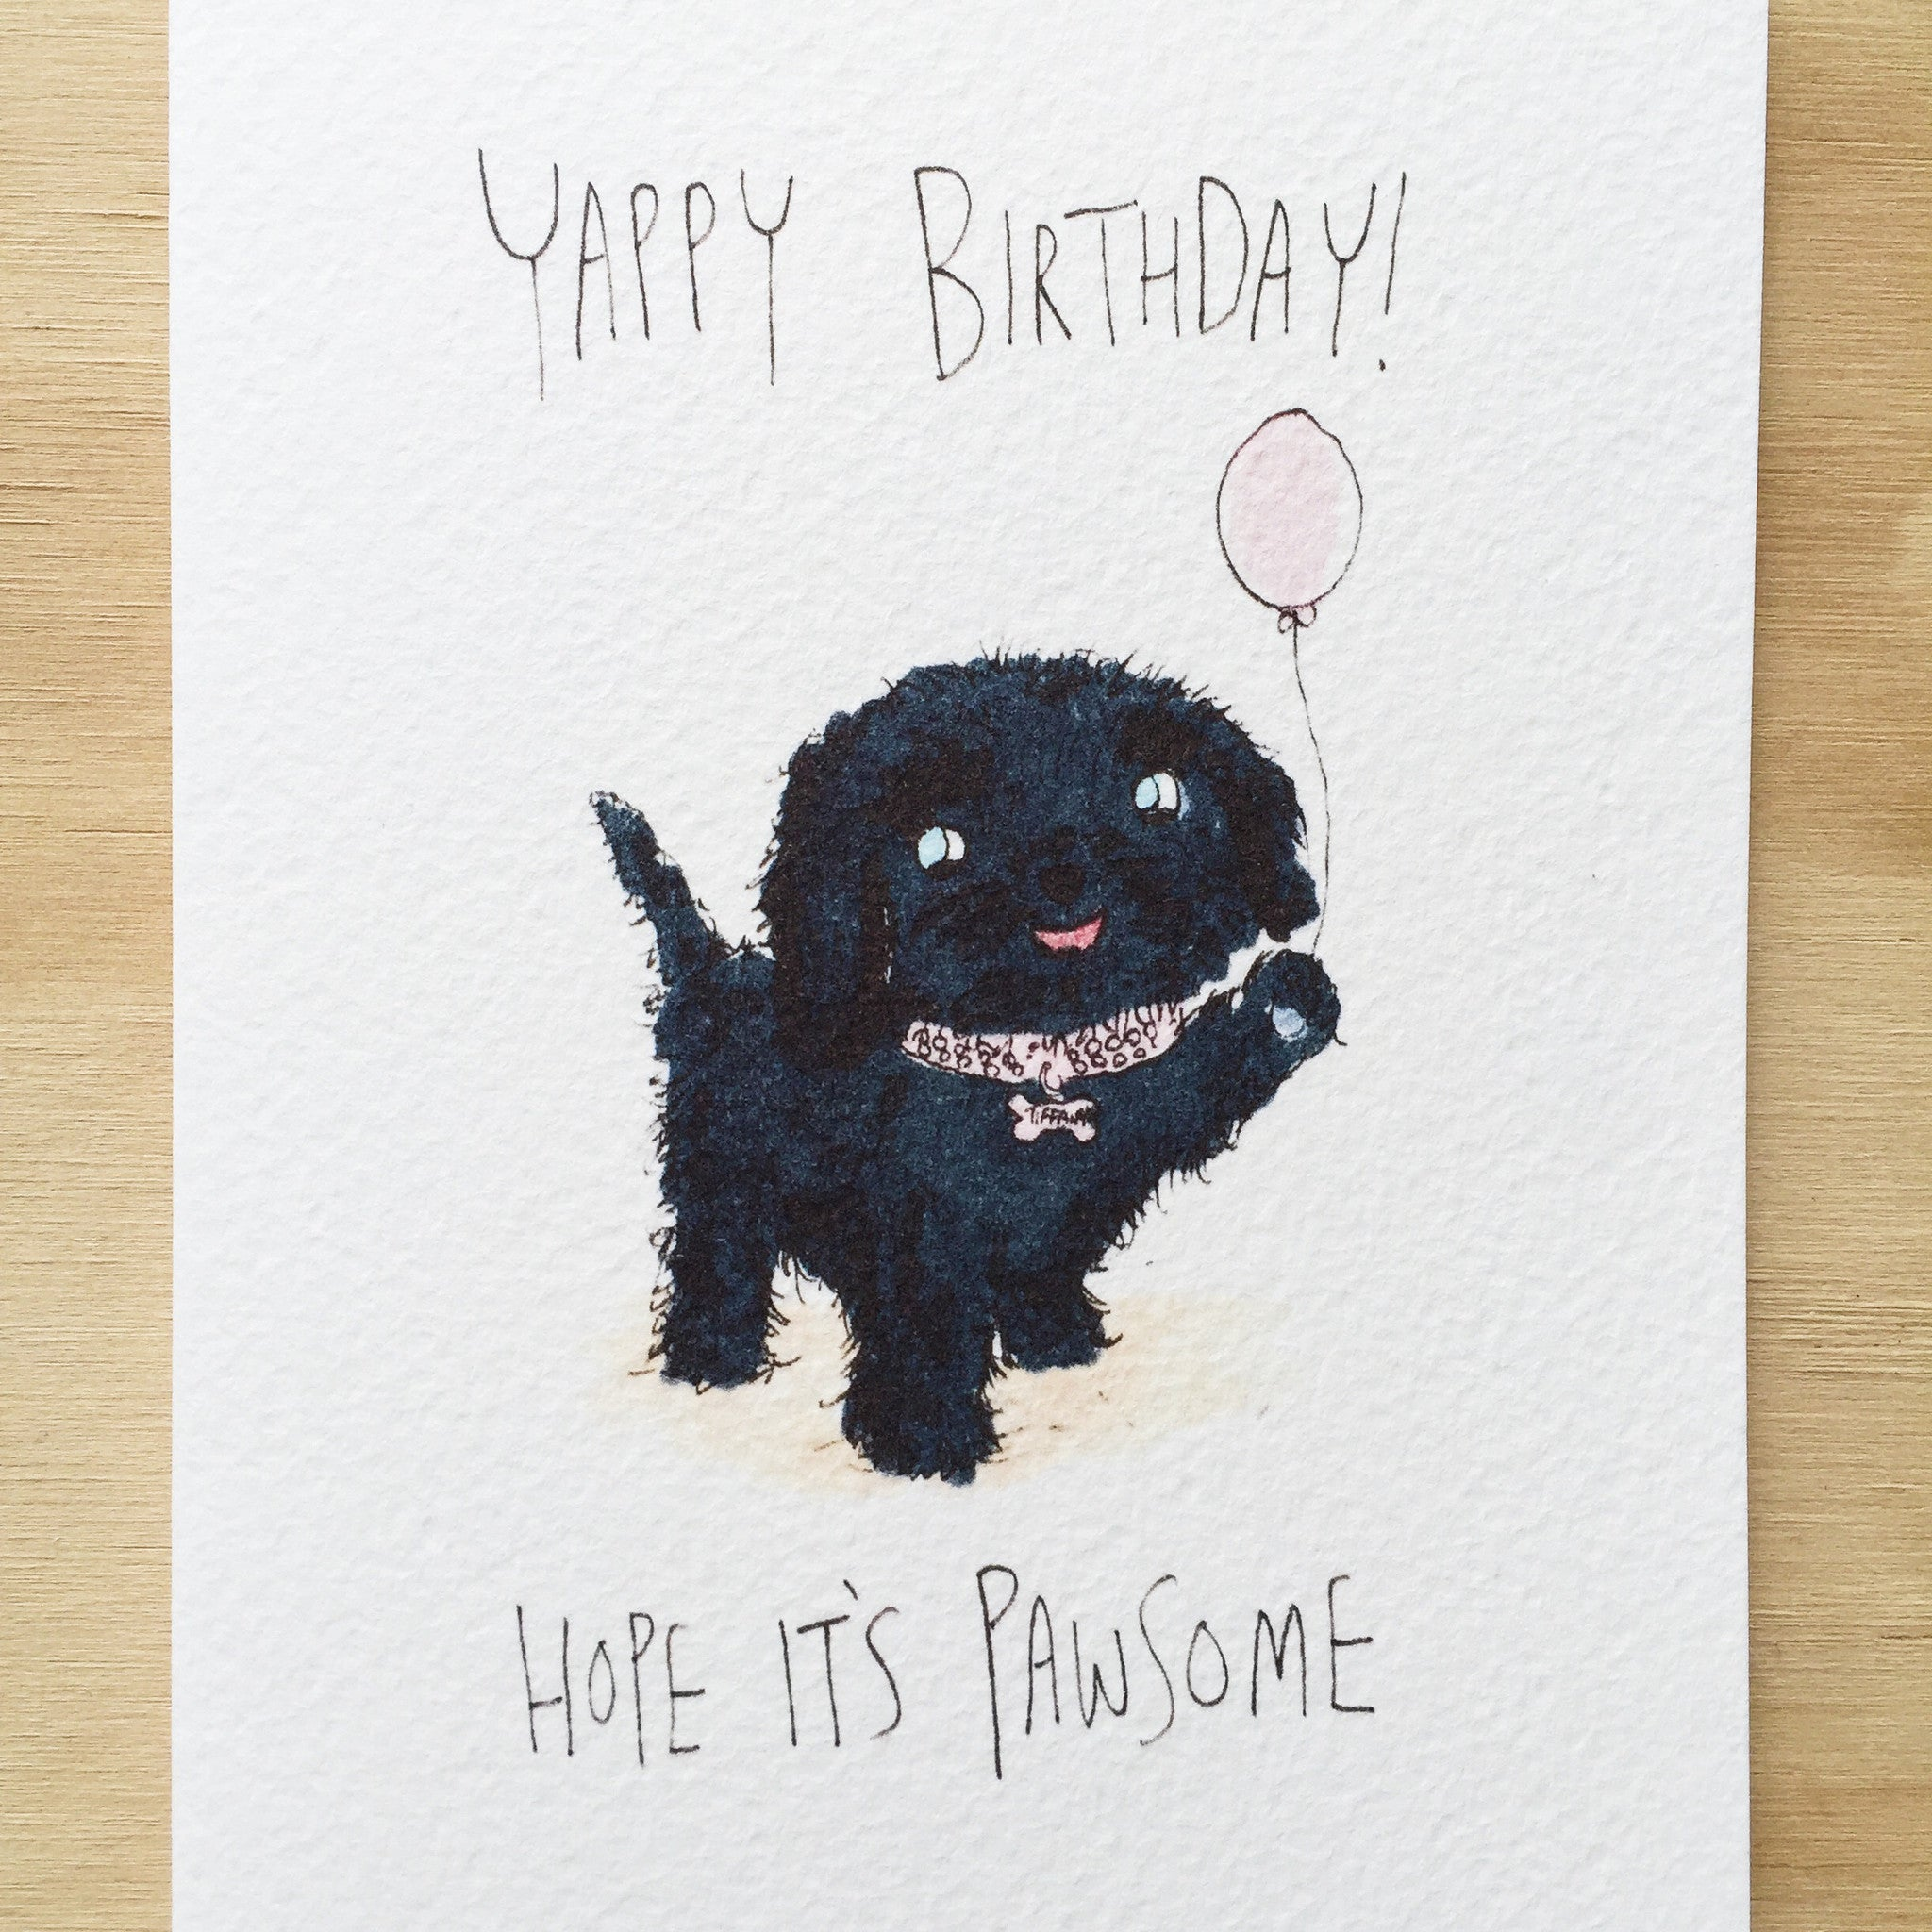 Yappy Birthday, Hope it's Pawsome - Well Drawn